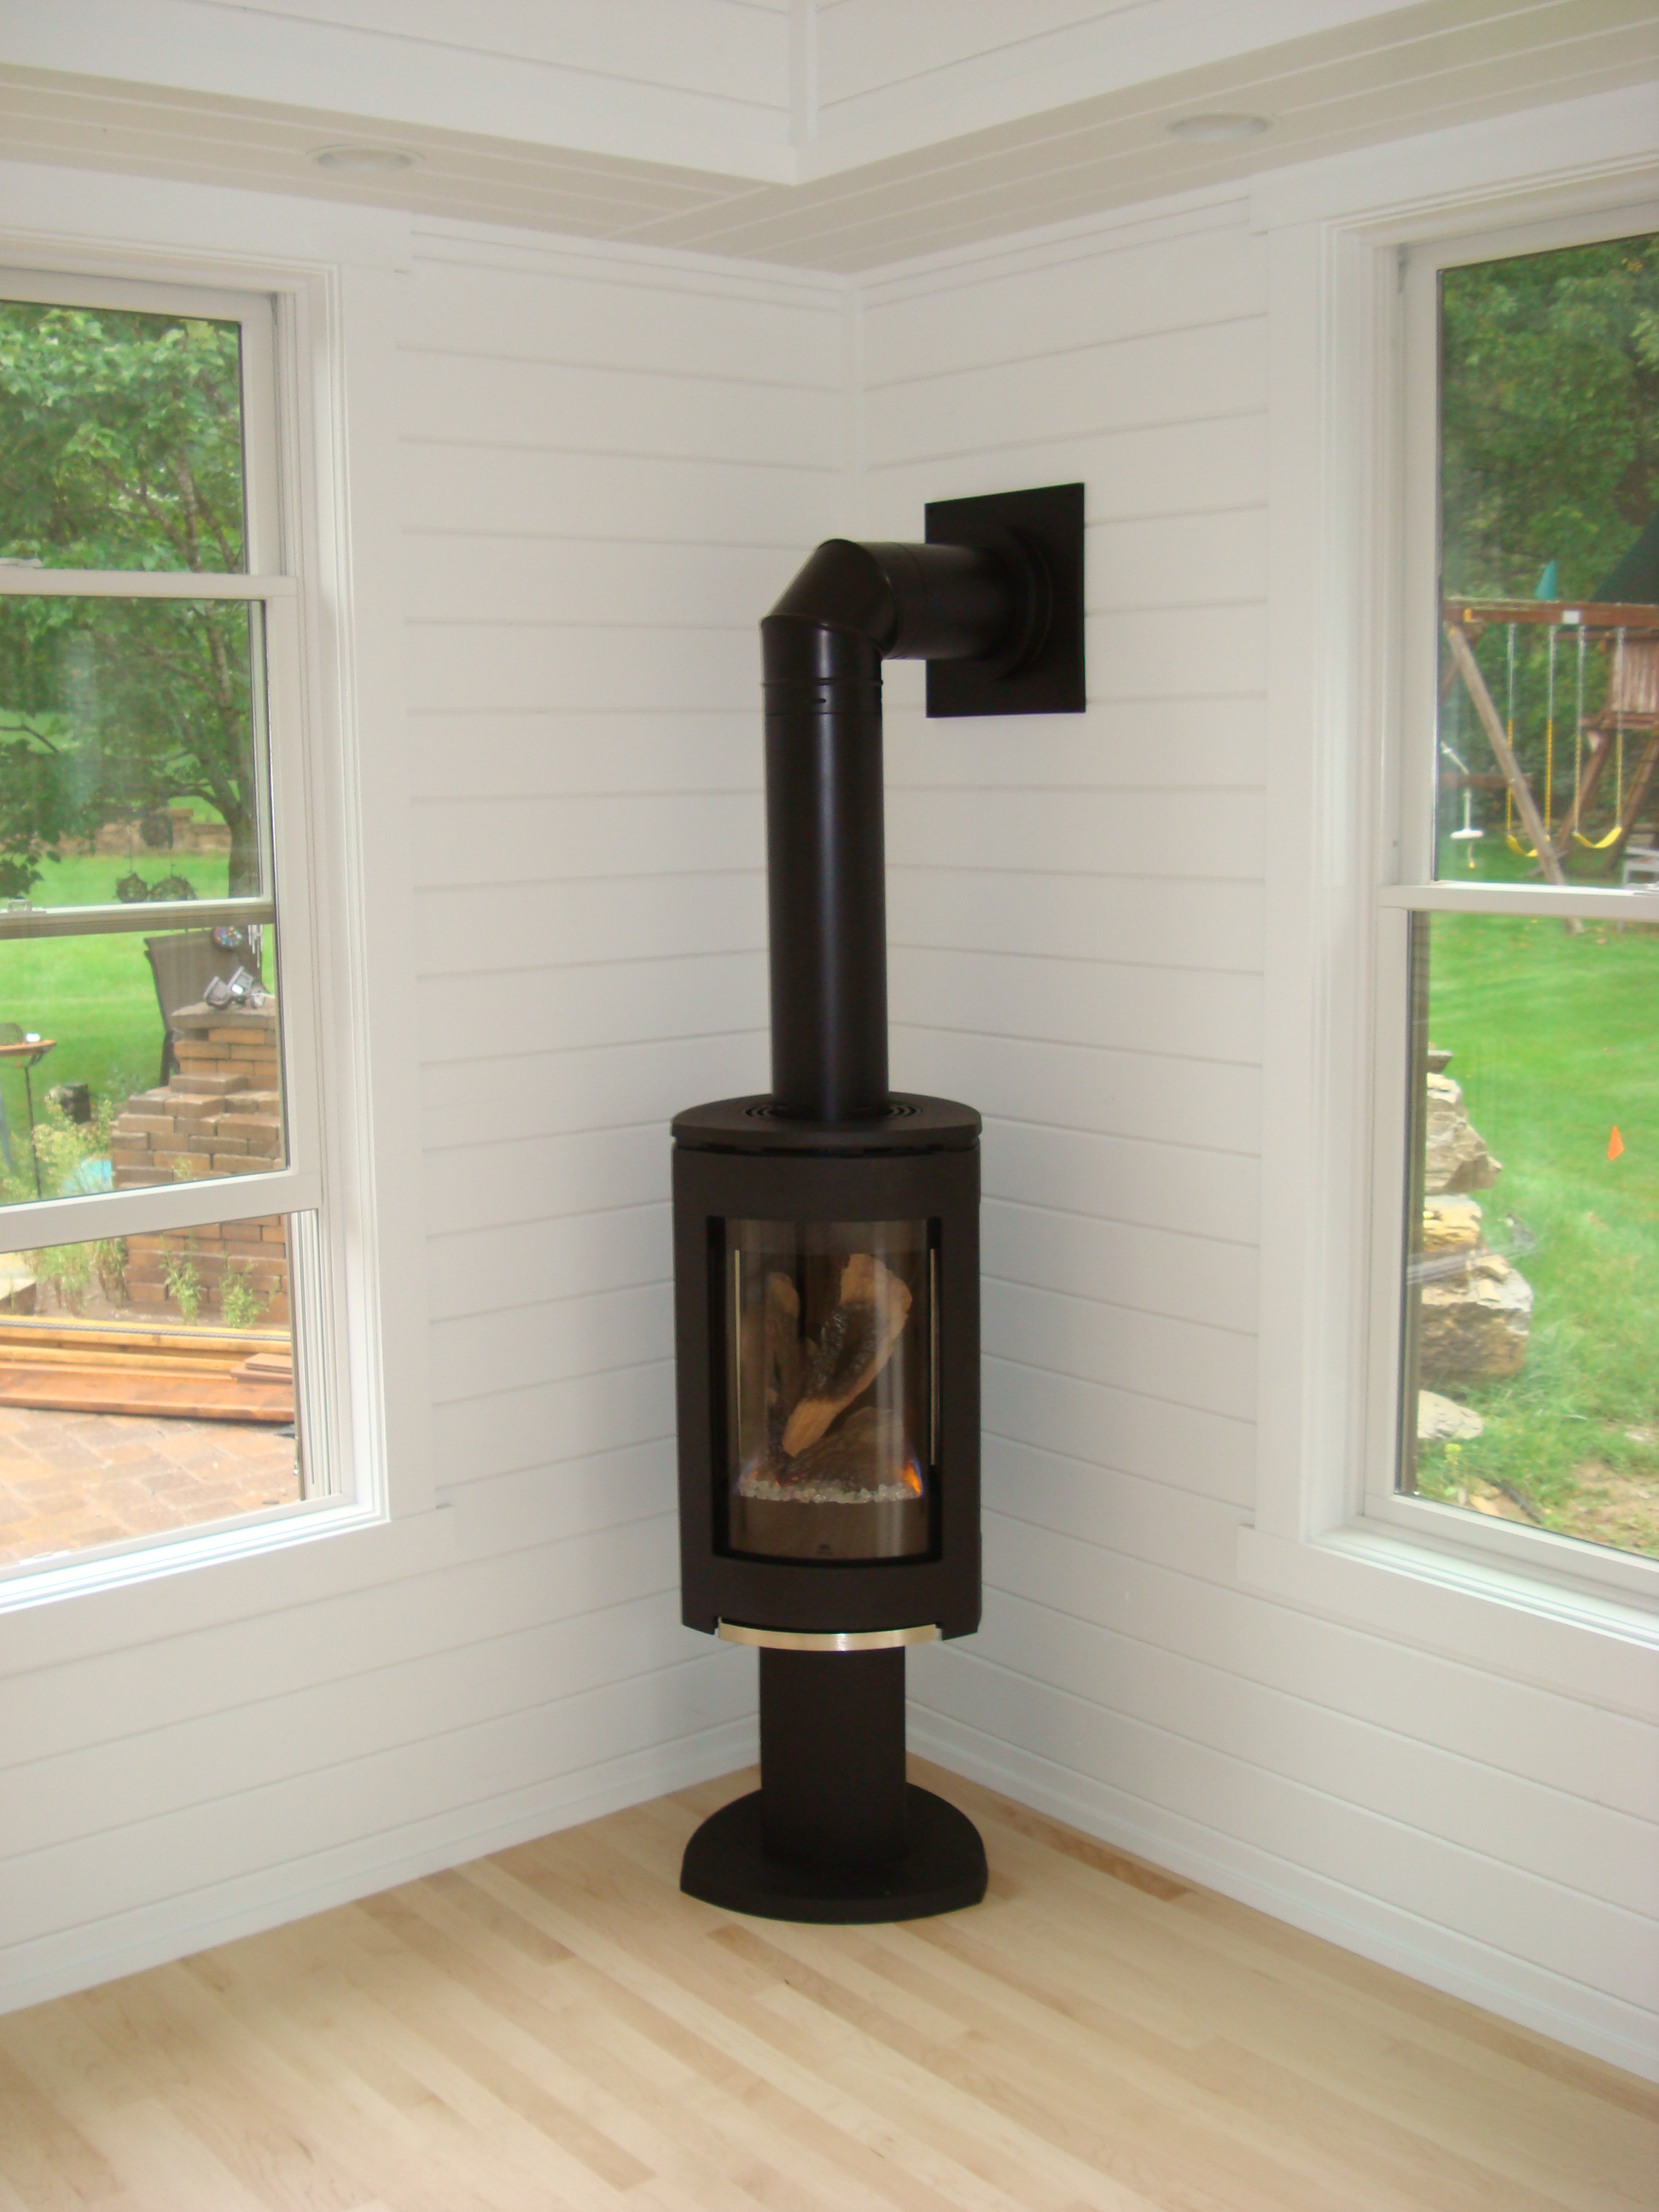 Jotul 370 Gas Stove, contemporary gas stove